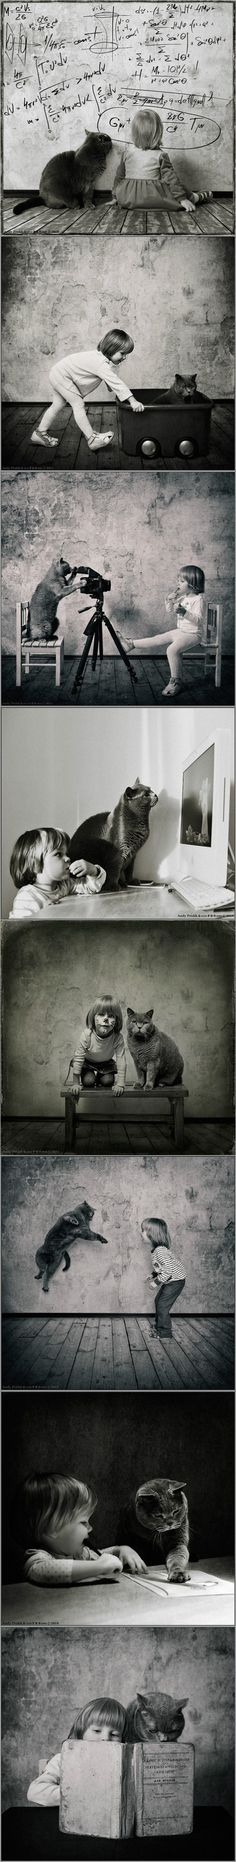 A girl and her cat. So freakin adorable. And I'm loving this cat's sweet face!